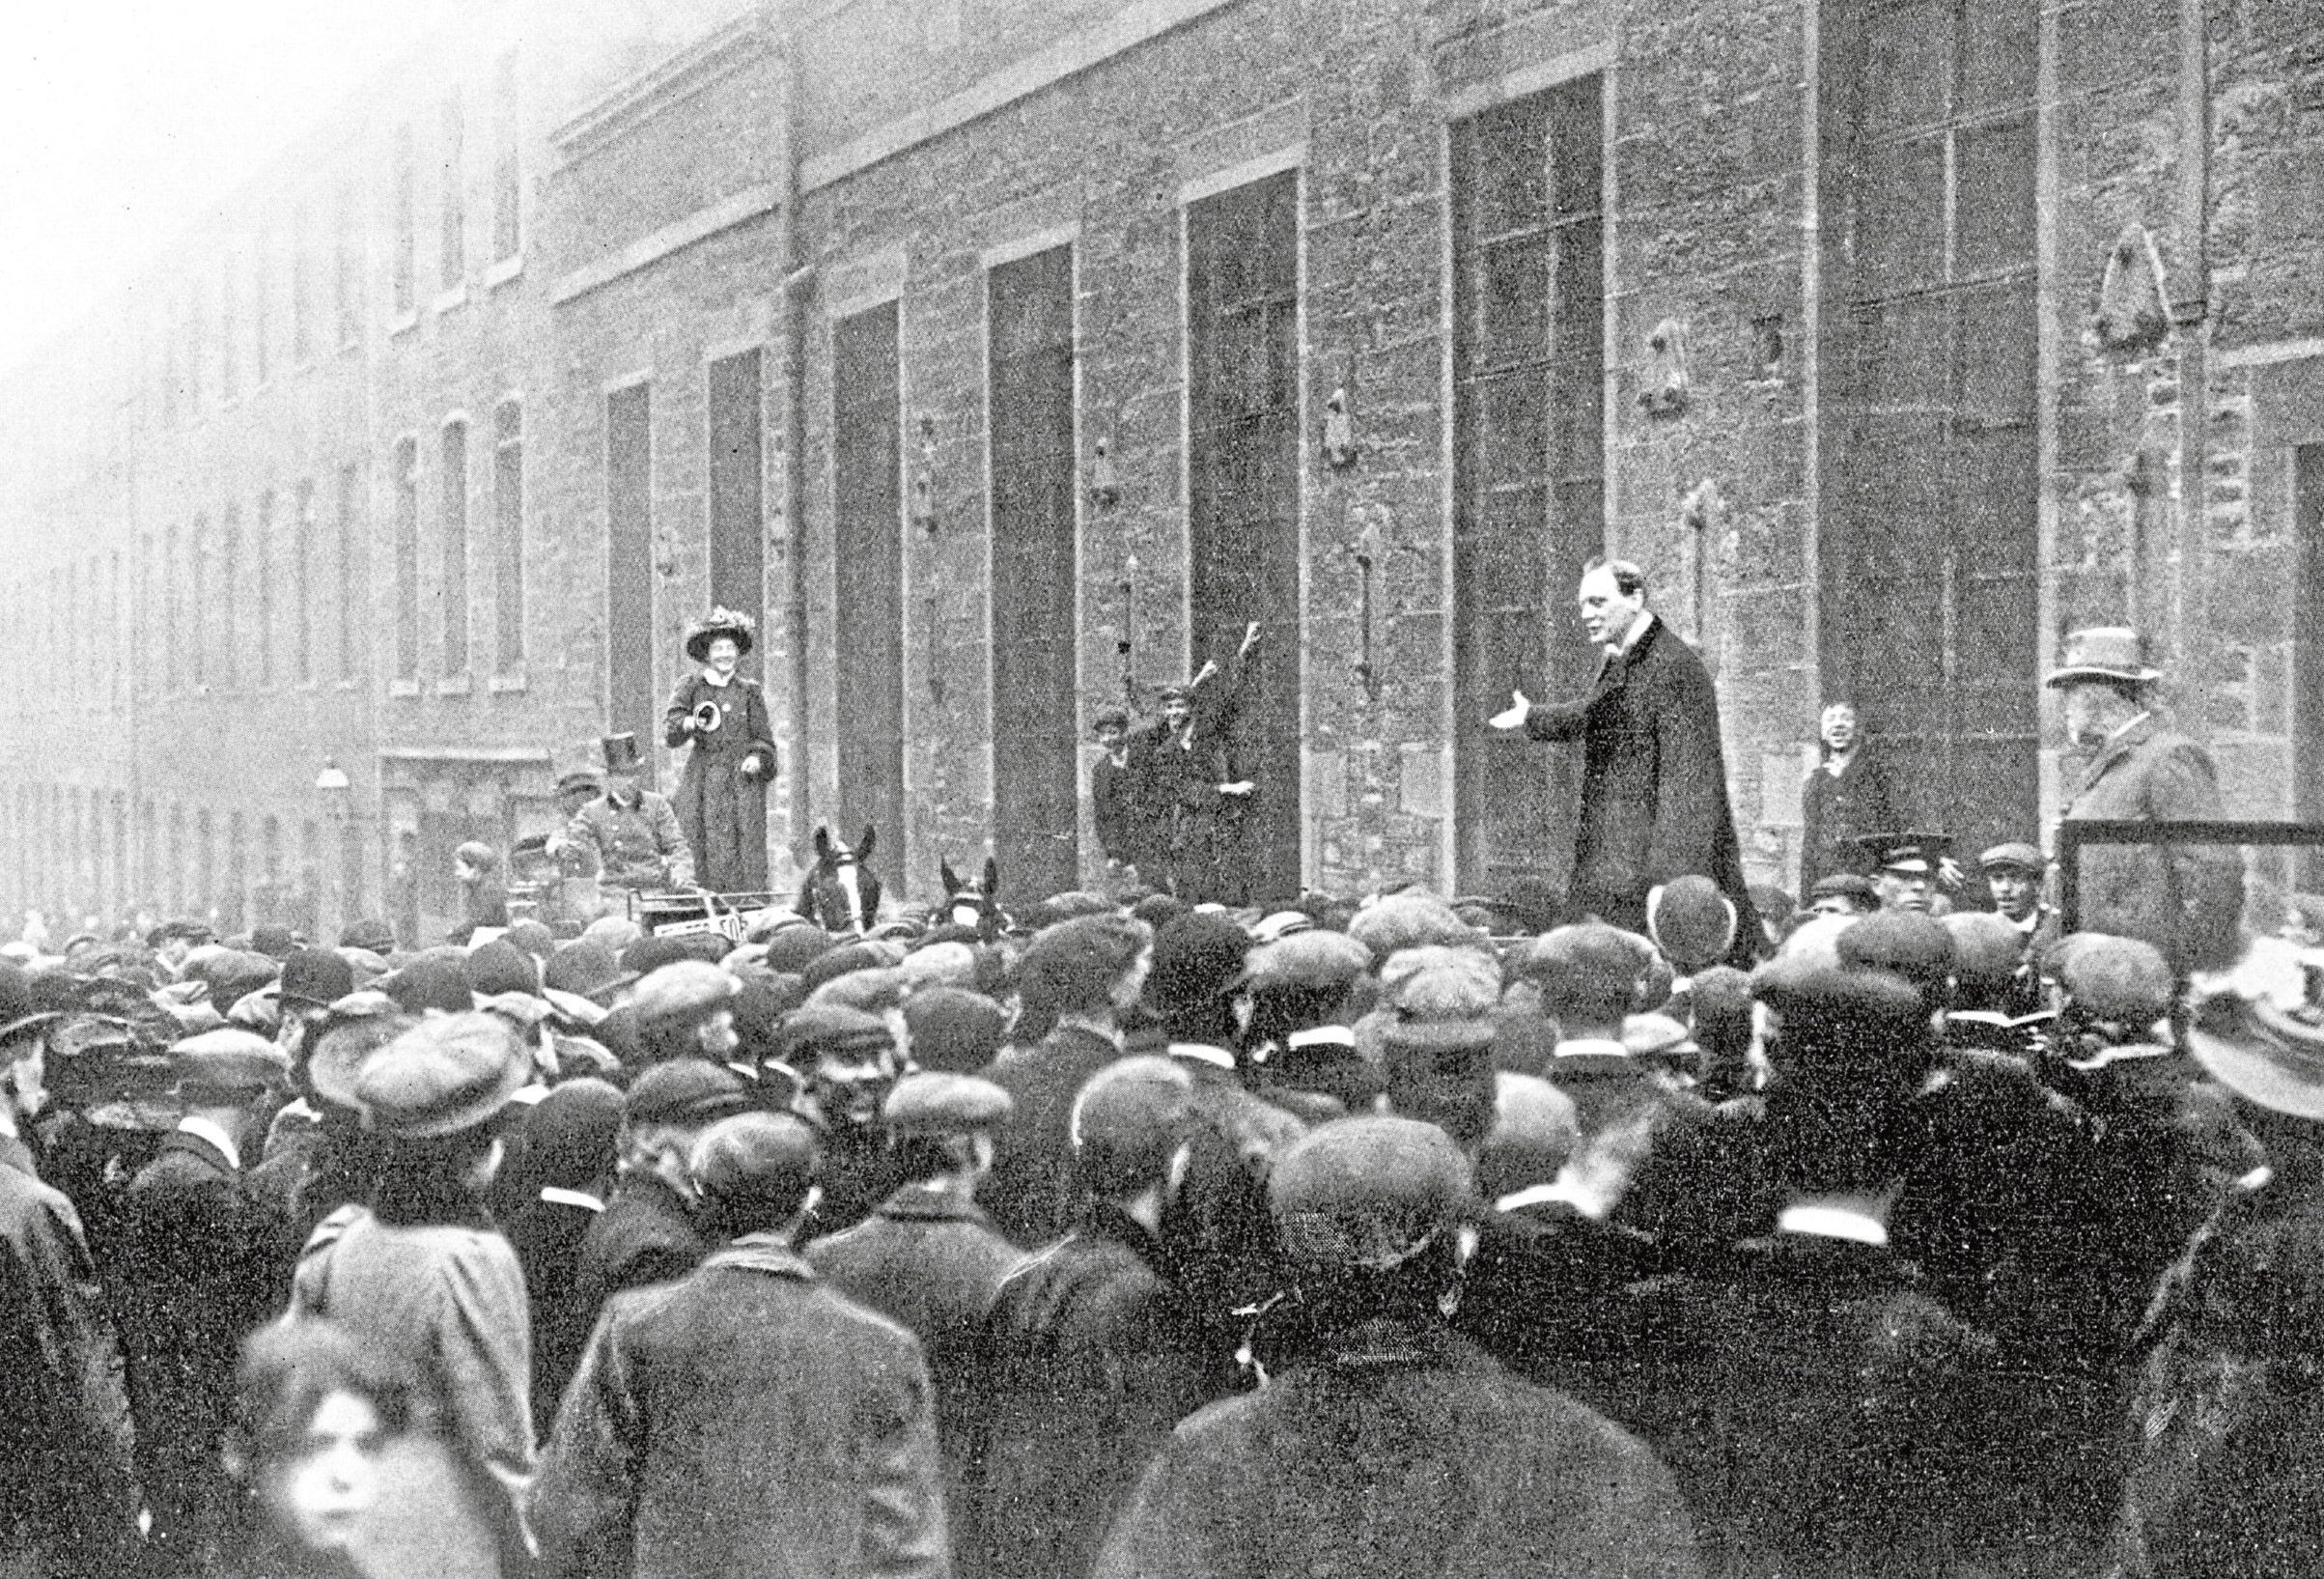 Winston Churchill addresses workmen in the city as Mary Molony arrives to drown out his voice.